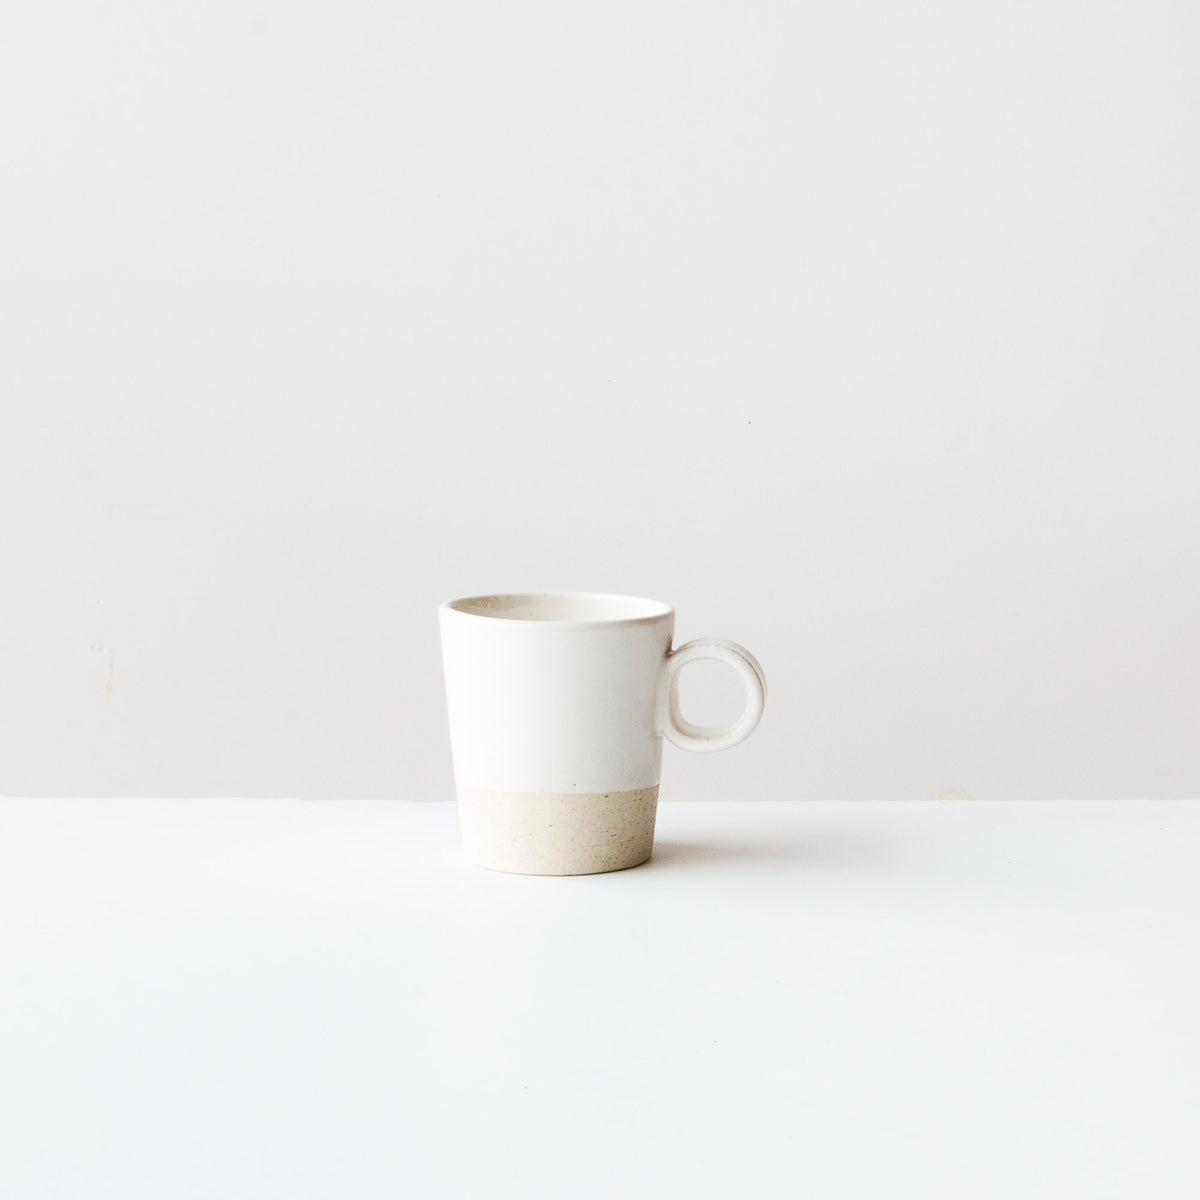 Handmade Ceramic Mug - Sold by Chic & Basta